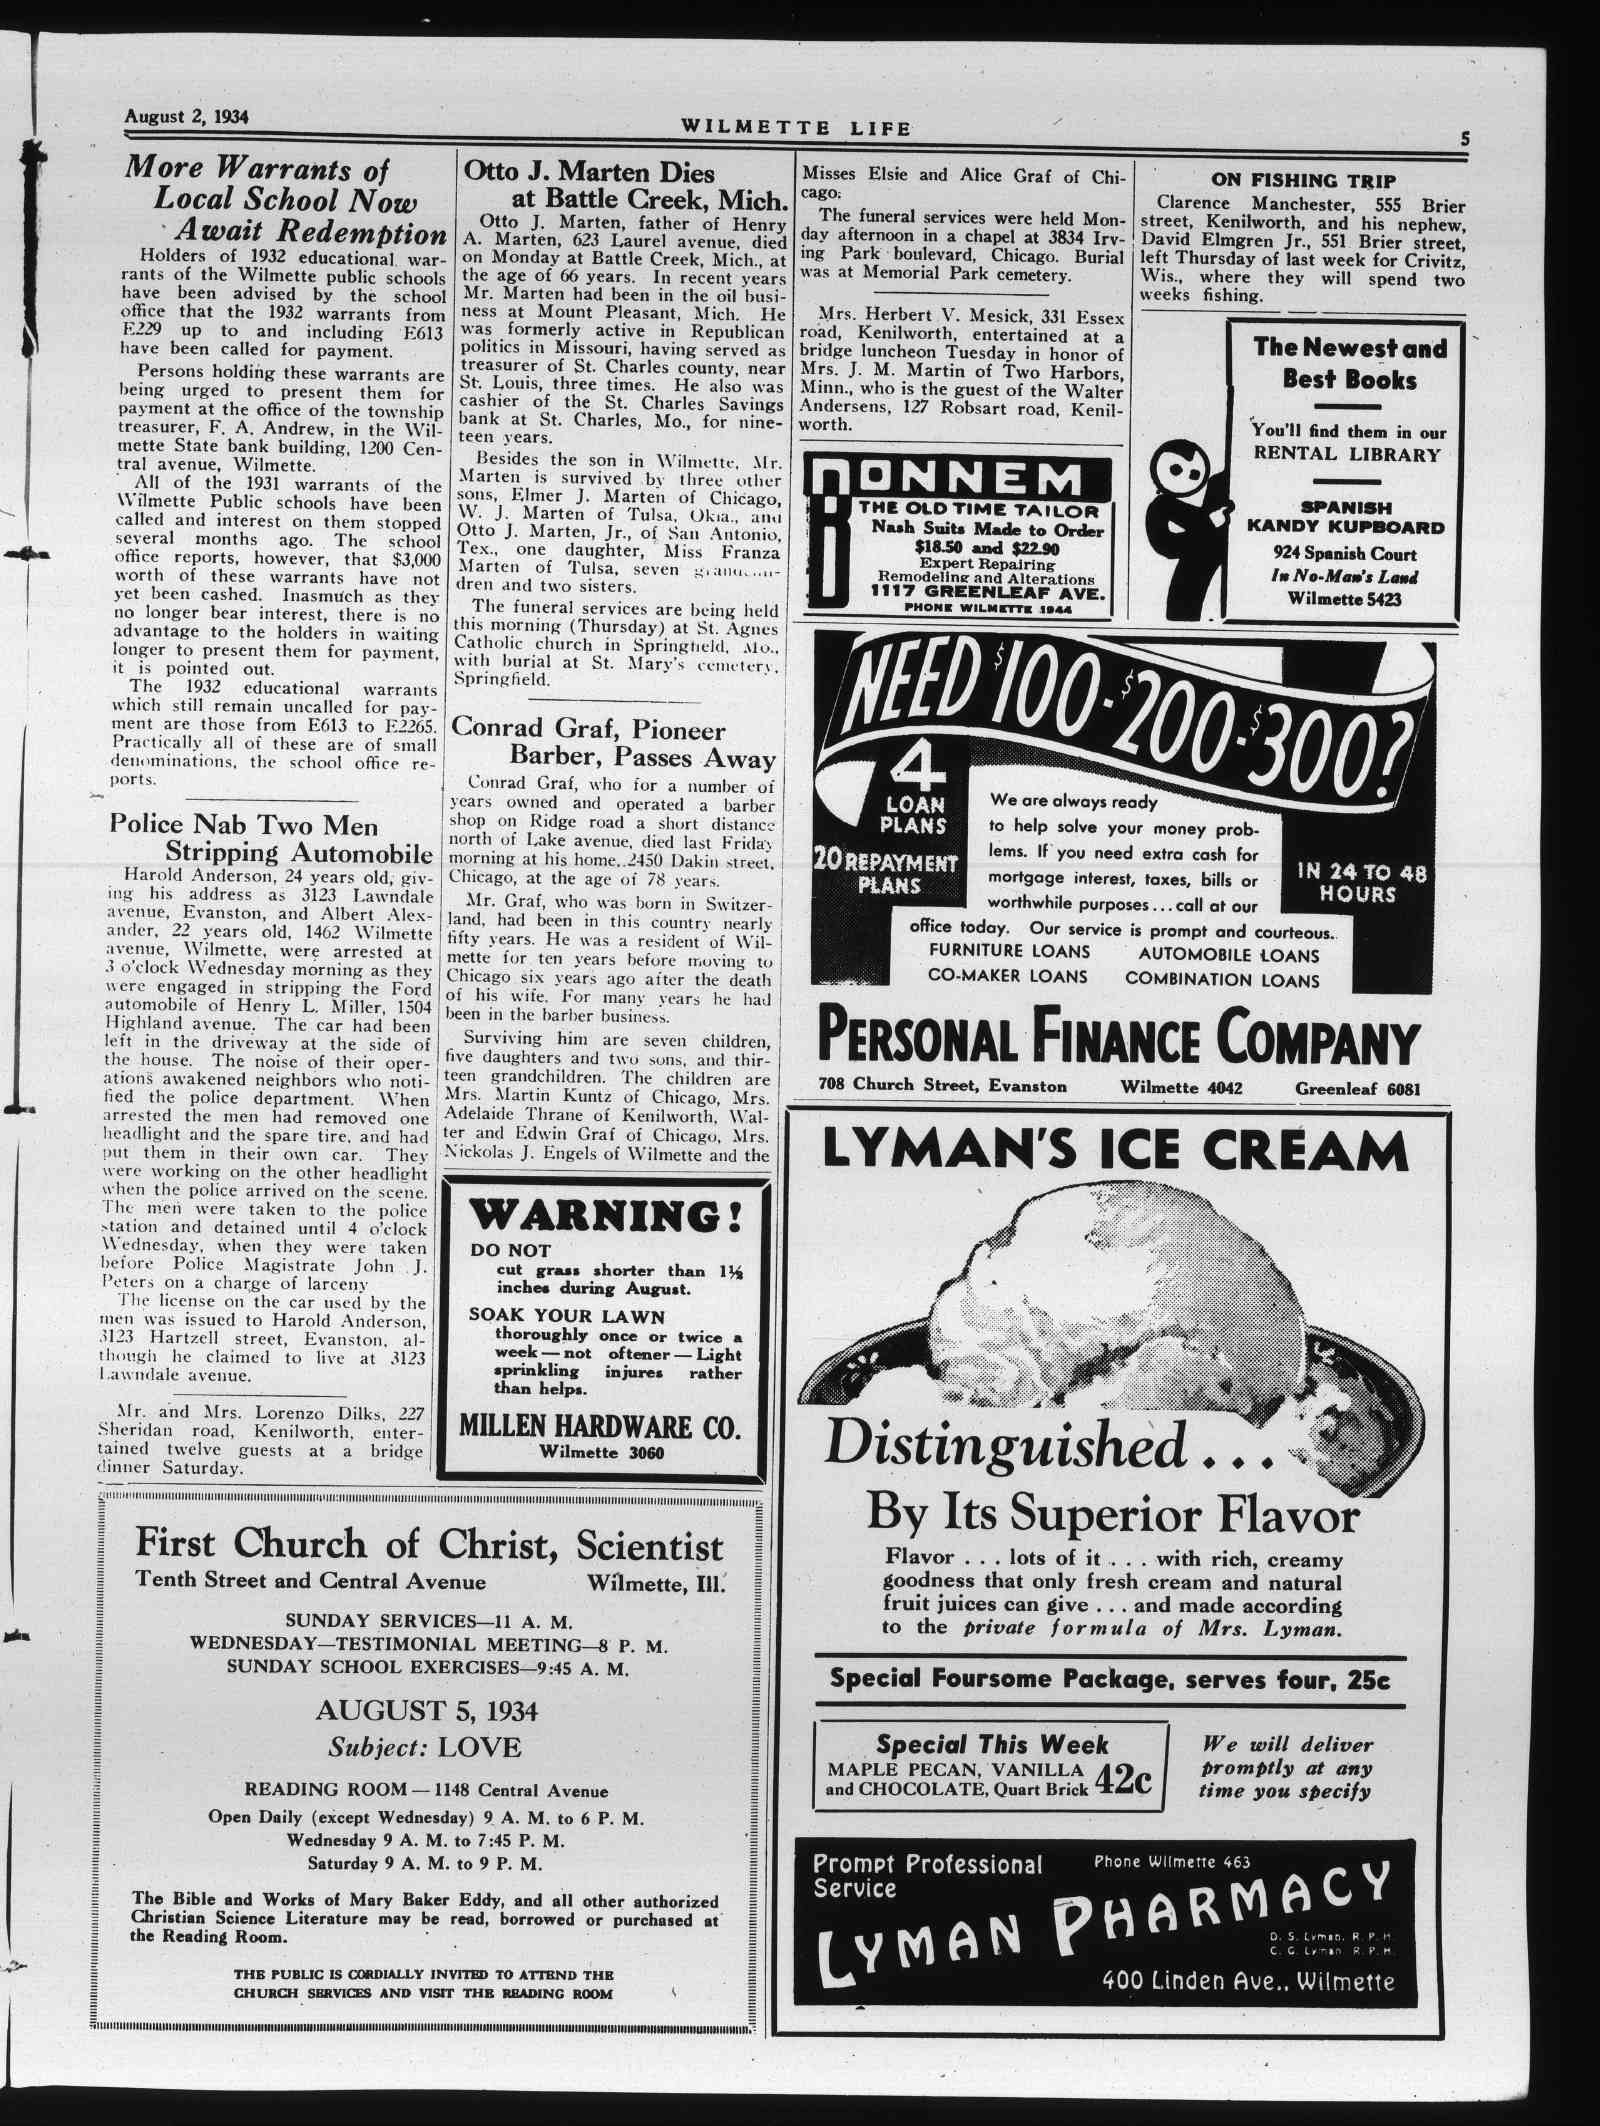 Wilmette Life (Wilmette, Illinois), 2 Aug 1934